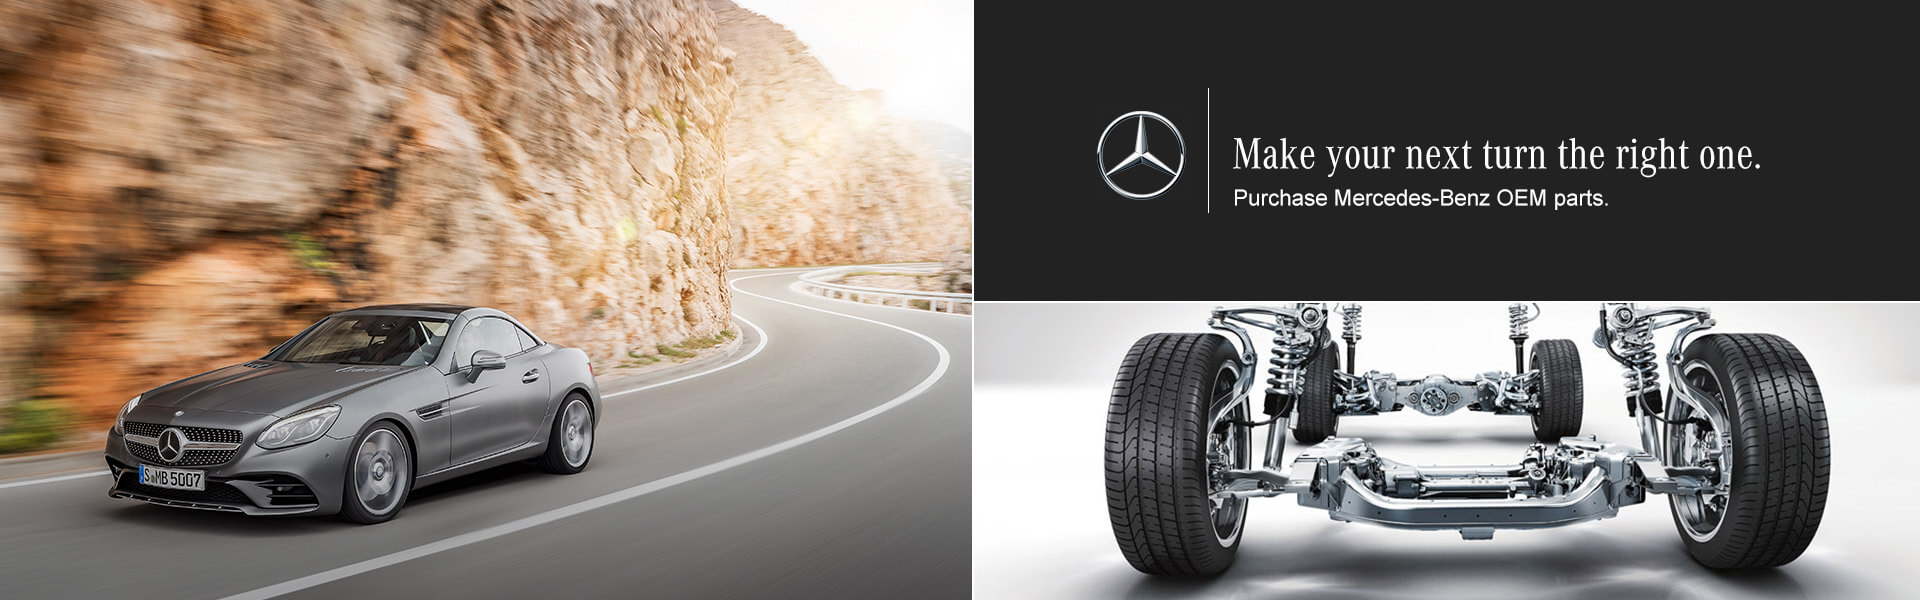 Make the right turn, choose Mercedes Benz OEM Parts